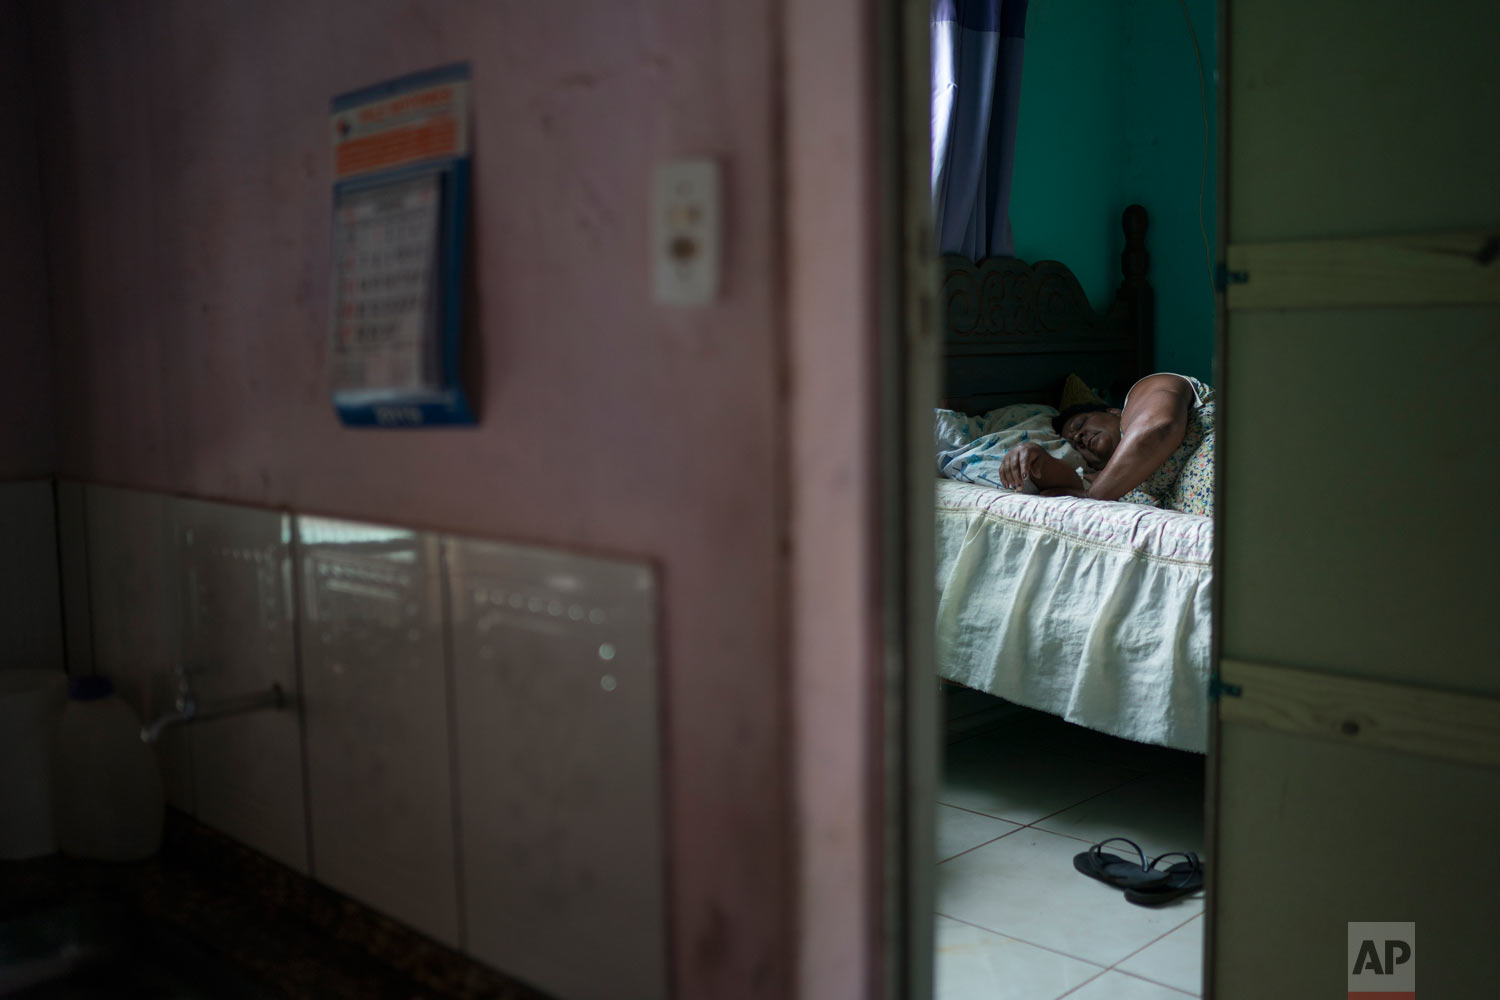 Malvina Firmina Nunes, whose adult son went missing after a Vale dam collapse, sleeps after taking sedatives at home in Brumadinho, Brazil, Jan. 30, 2019, two days before his body was recovered from the mud. (AP Photo/Leo Correa)